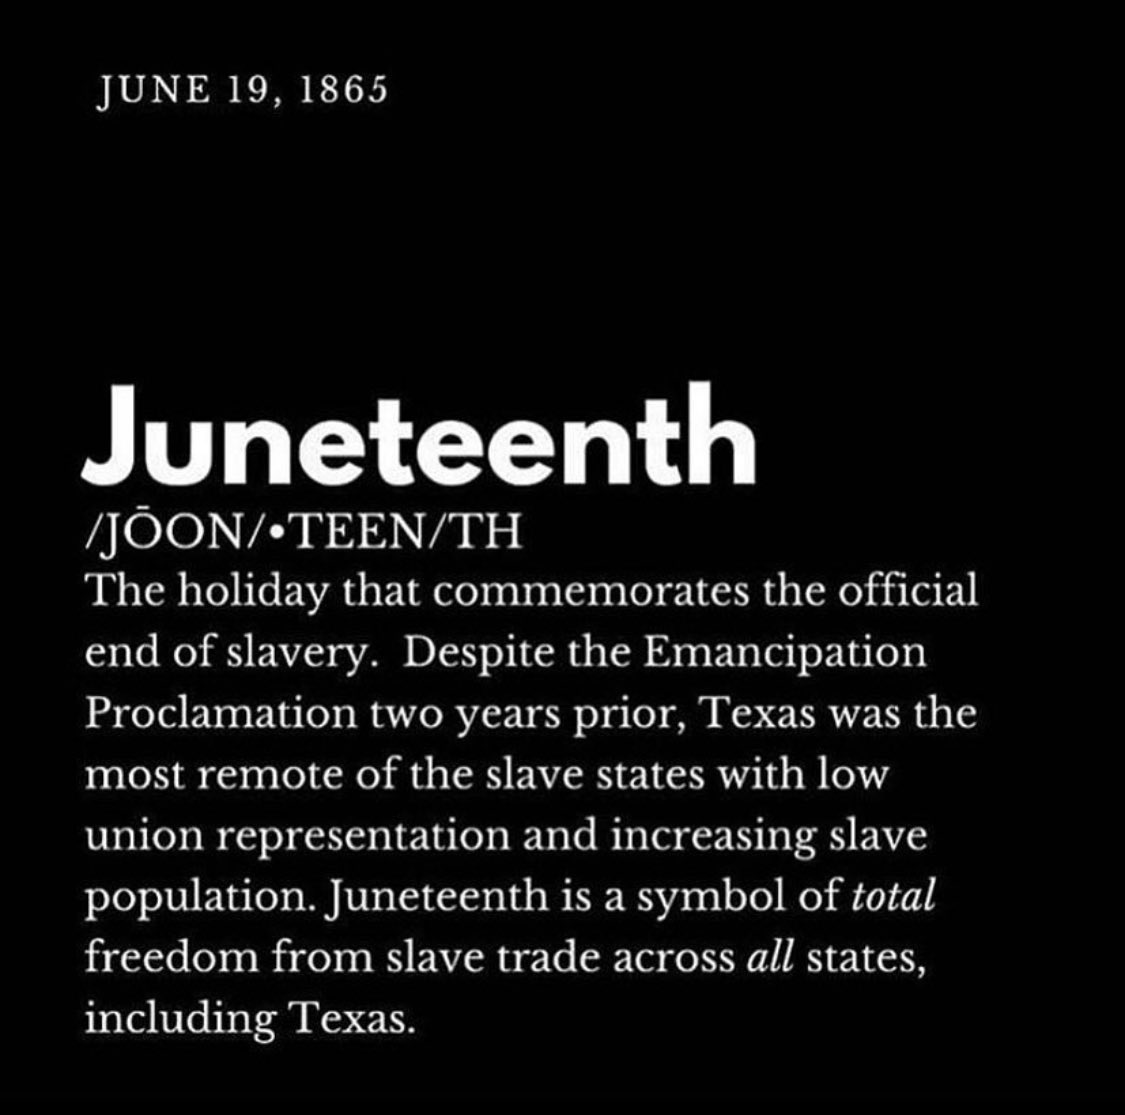 #Juneteenth  Education and compassion are always great starts ♥️🖤♥️🖤♥️ Today's a very important day, I hope Everyone  is healthy and well  #happyjuneteenth #juneteenth #juneteenth2020 https://t.co/Vuxnz7jLbY